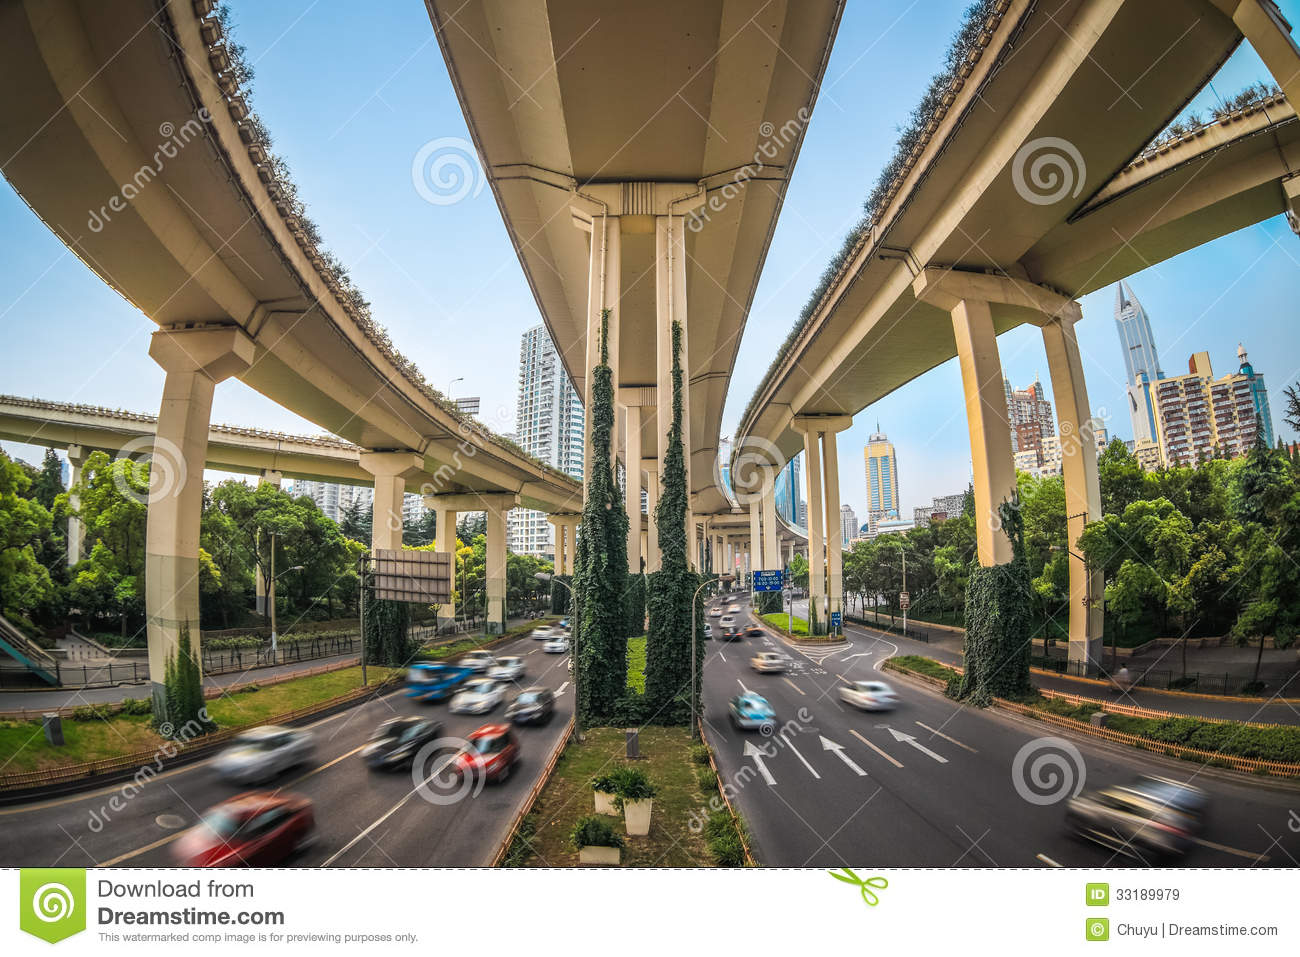 Bridge Street Auto >> Elevated Traffic Highway Royalty Free Stock Images - Image: 33189979